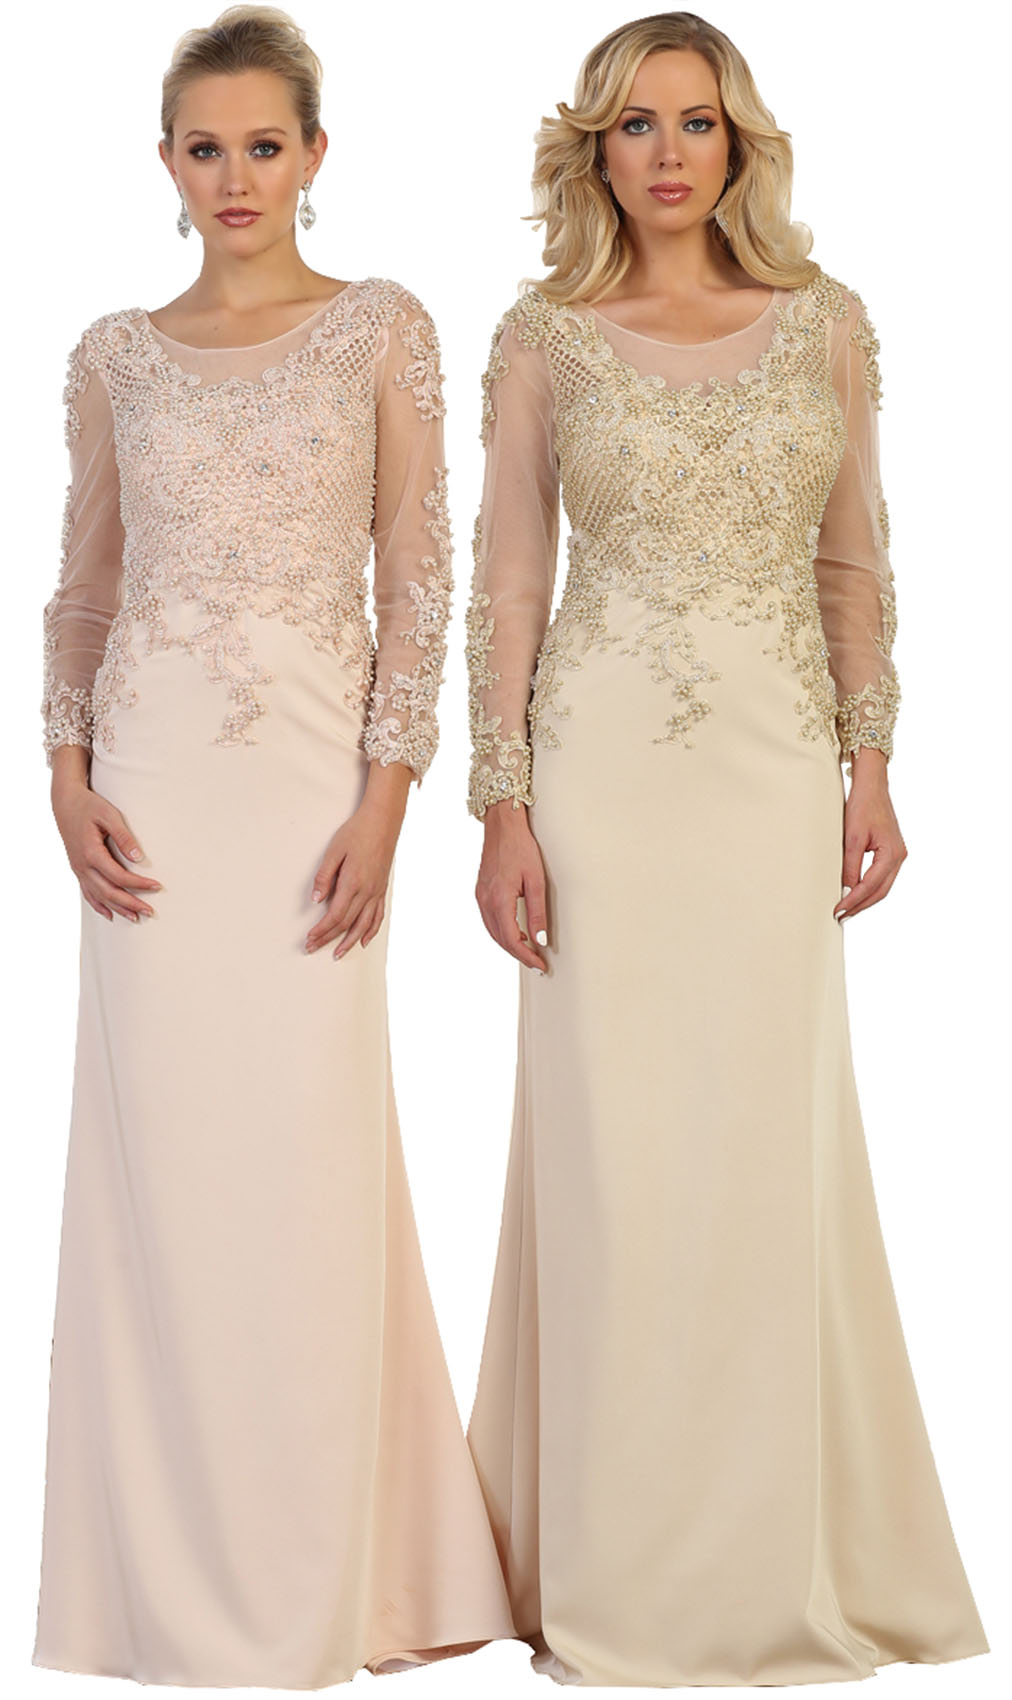 71d7203f61f Designer LONG SLEEVE DESIGNER MOTHER OF THE BRIDE EVENING SPECIAL OCCASION  FORMAL CHURCH CLASSY PLUS SIZE